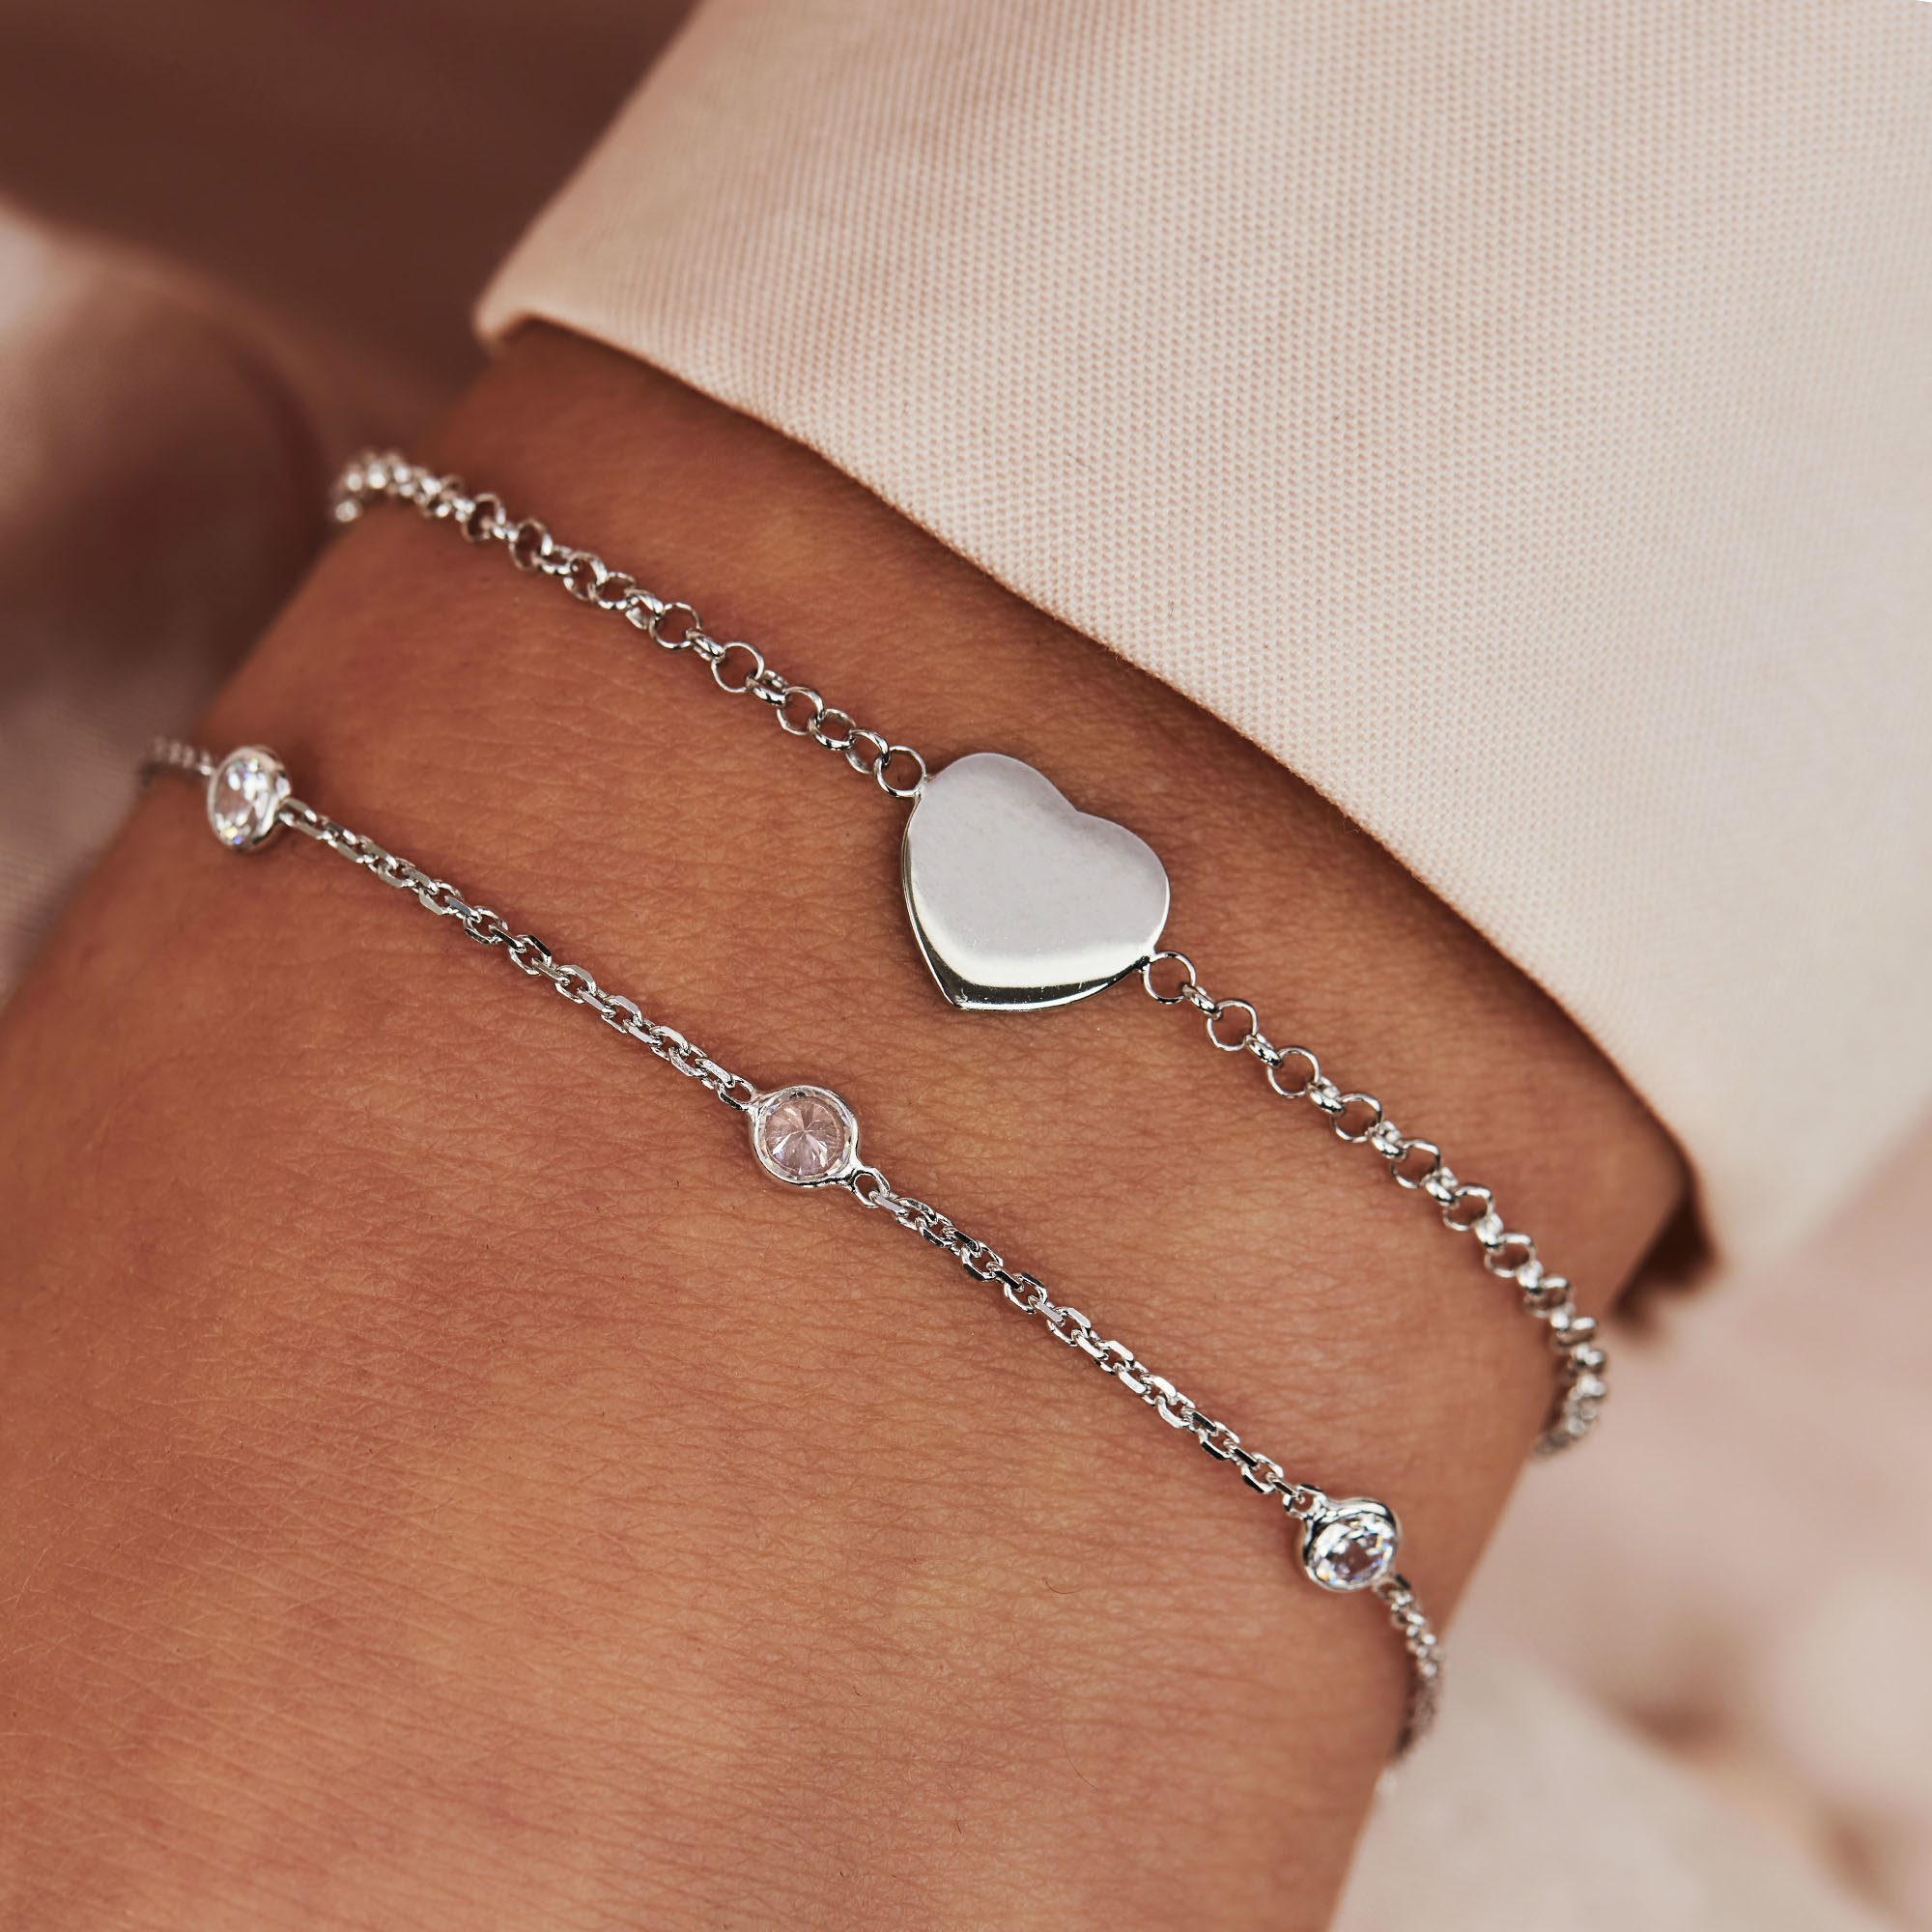 Selected Jewels Mila Elodie 925 sterling silver bracelet with zirconia